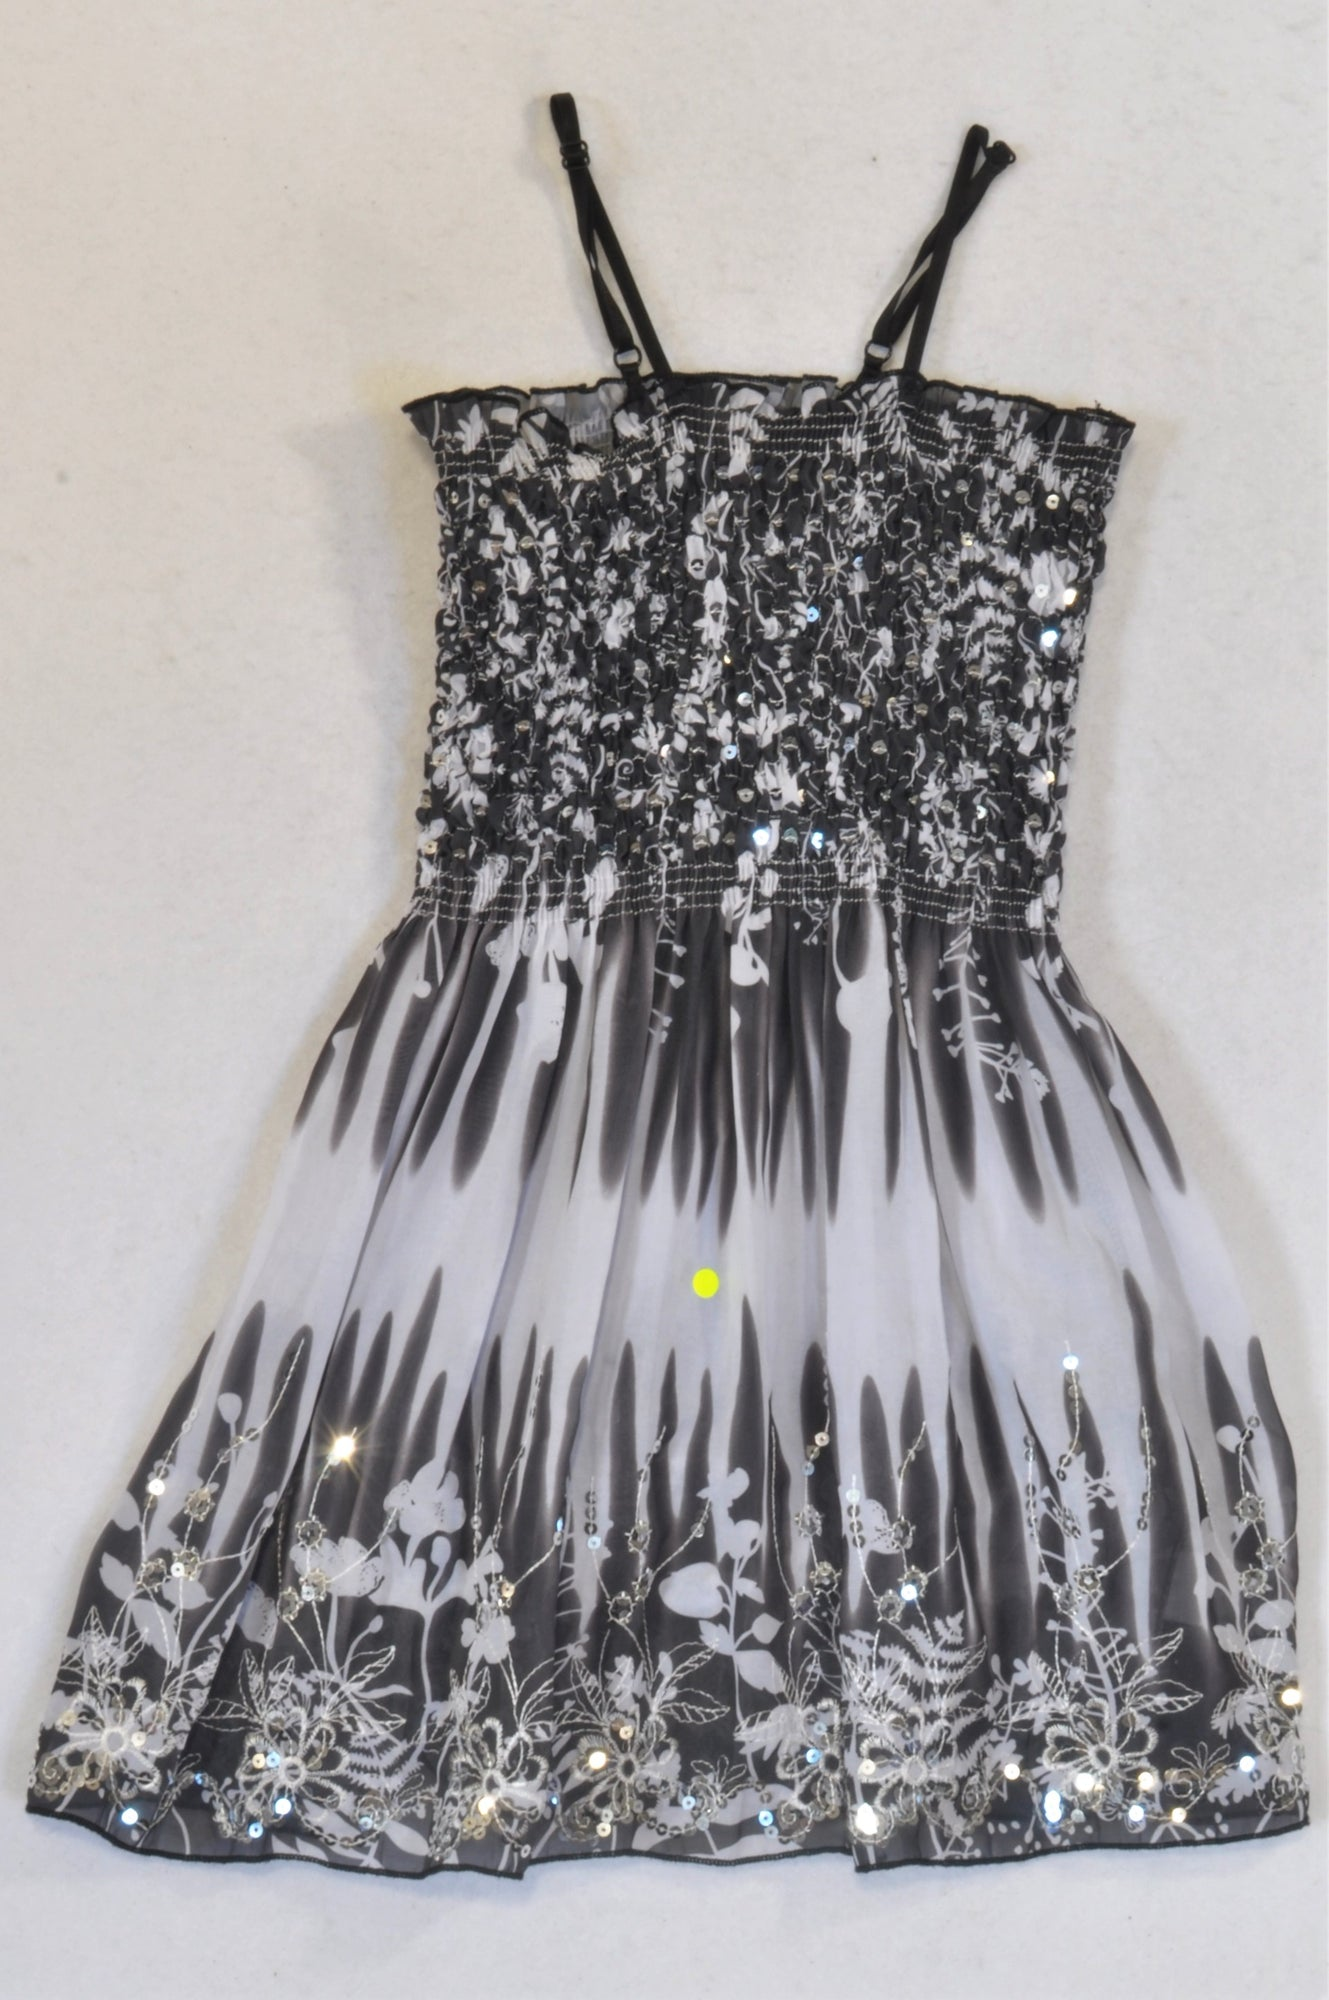 Black & White Sequin Chiffon Dress Girls 5-6 years